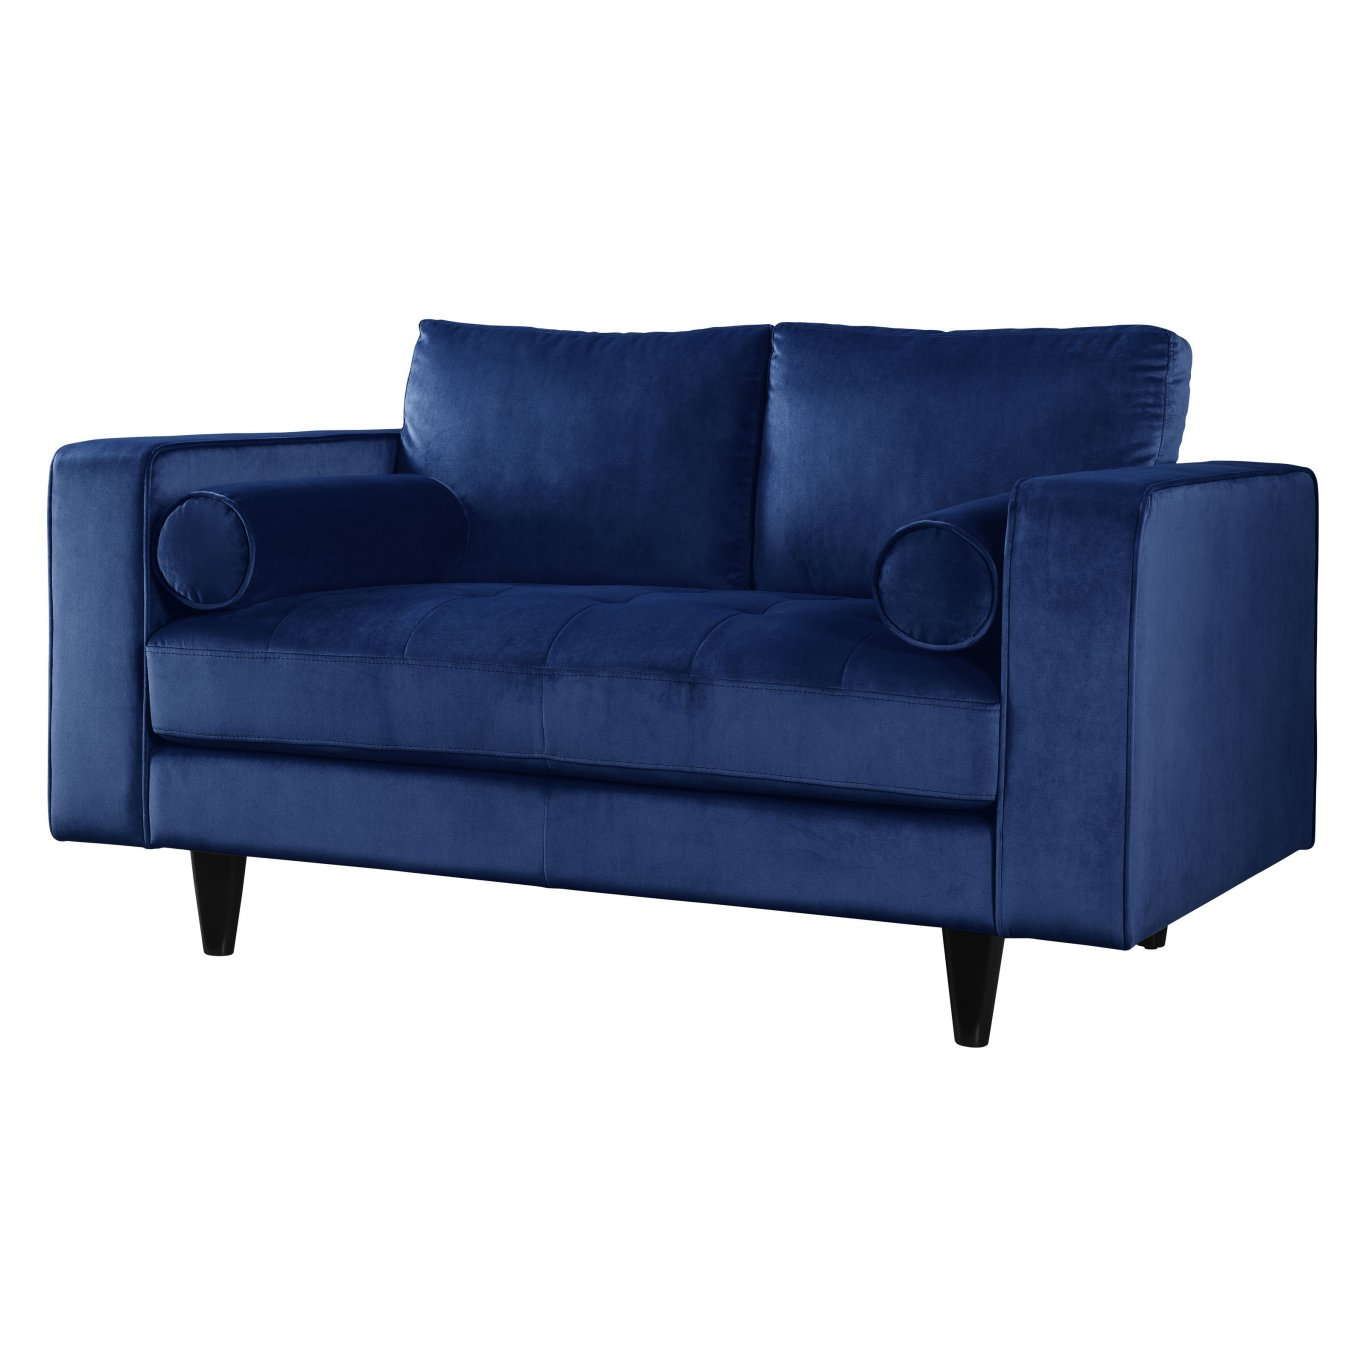 Acme 51076 Heather Navy Velvet Finish Transitional Loveseat